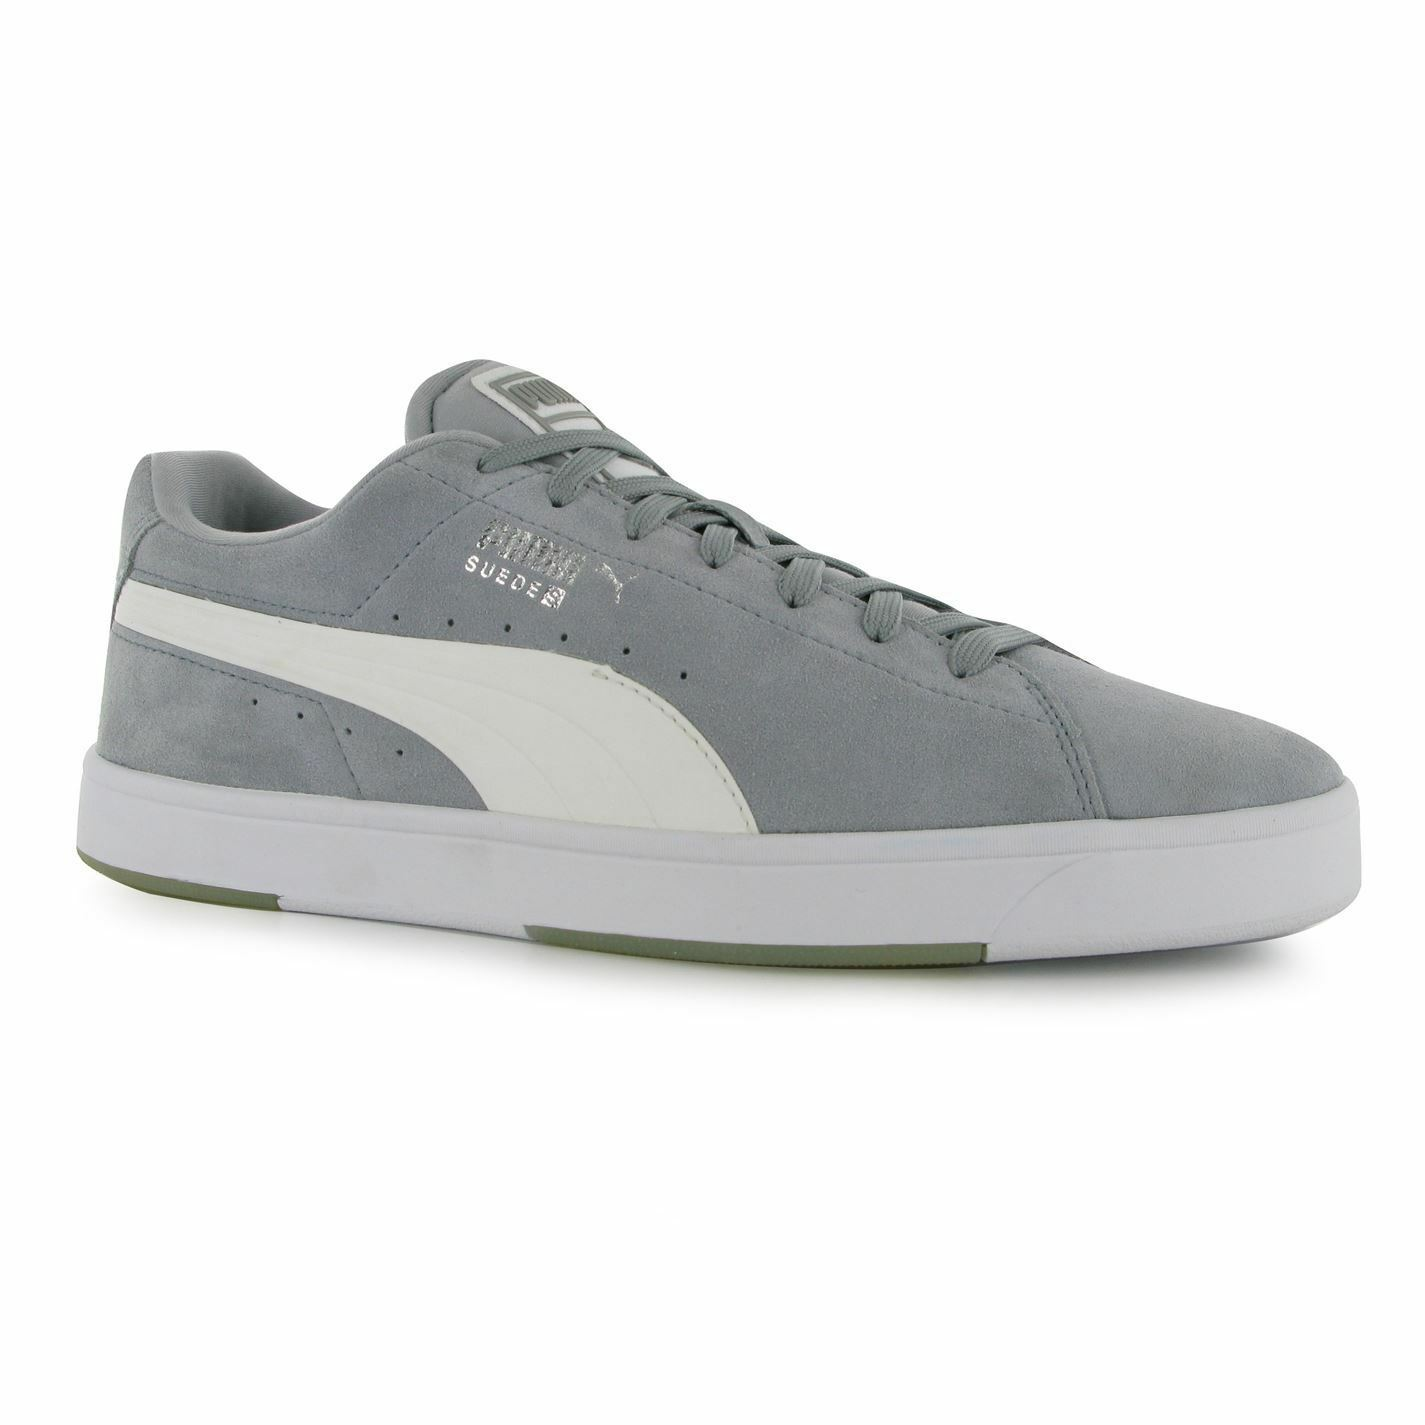 Puma Suede S Trainers Mens Grey/White Casual Sneakers Shoes Footwear